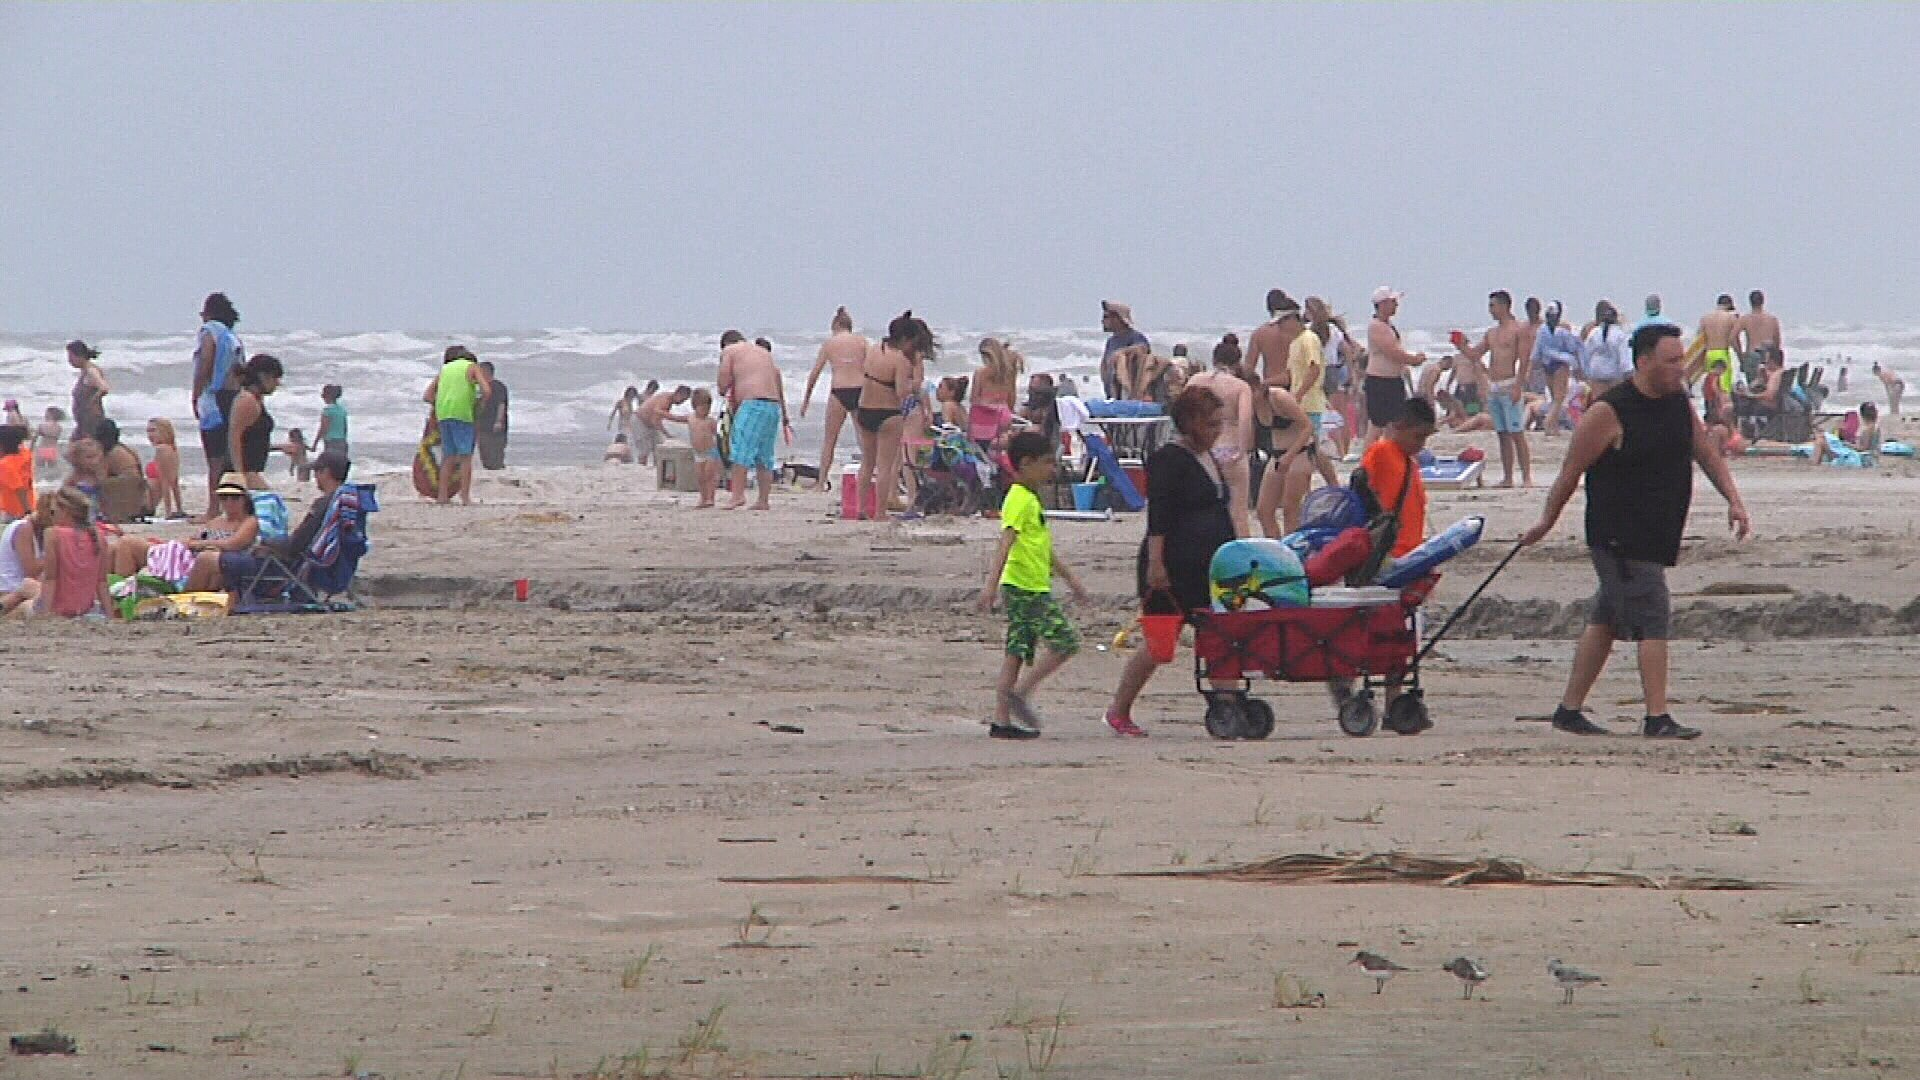 Residents also say spring break brings safety concerns.